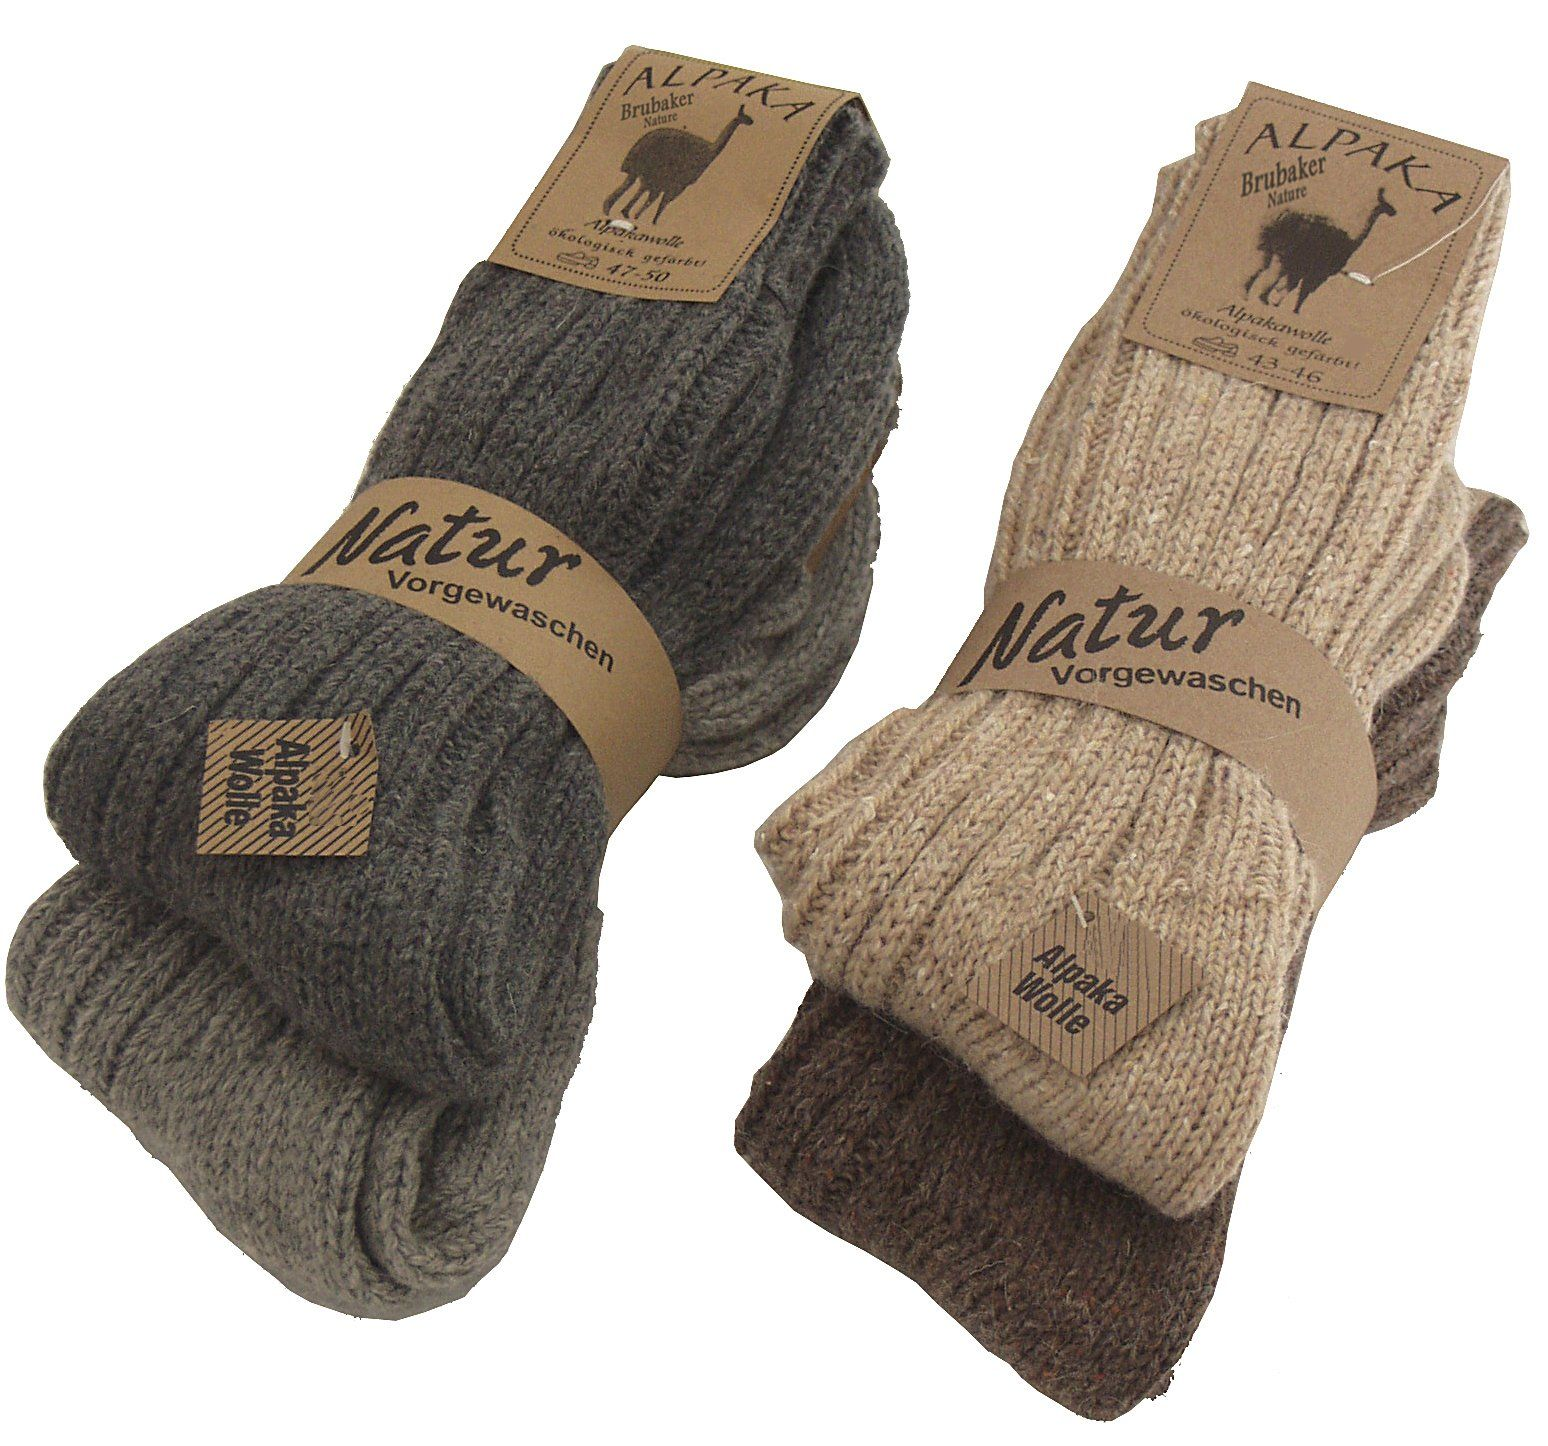 4 Pairs BRUBAKER Thick Alpaca Winter Socks For Men Or Women 100/% Alpaca